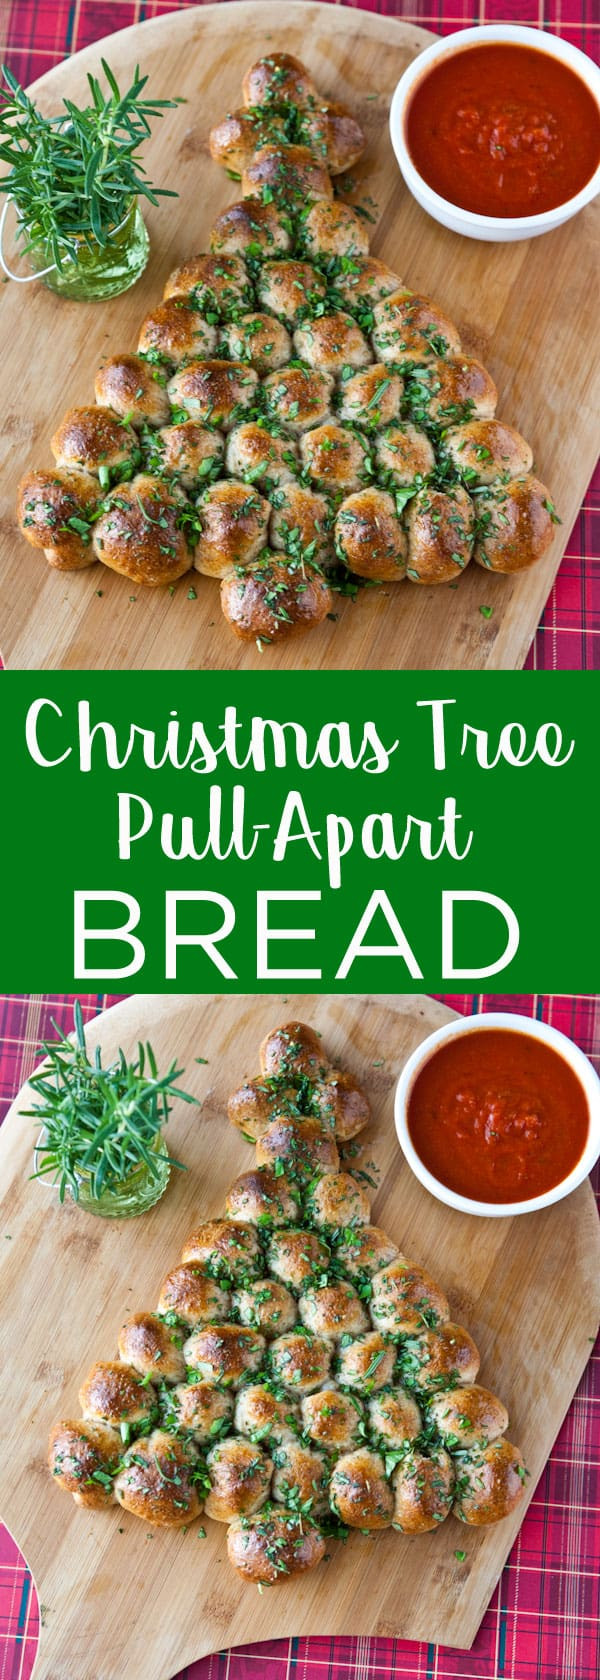 Christmas Tree Pull Apart Bread  Eclectic Recipes Christmas Tree Pull Apart